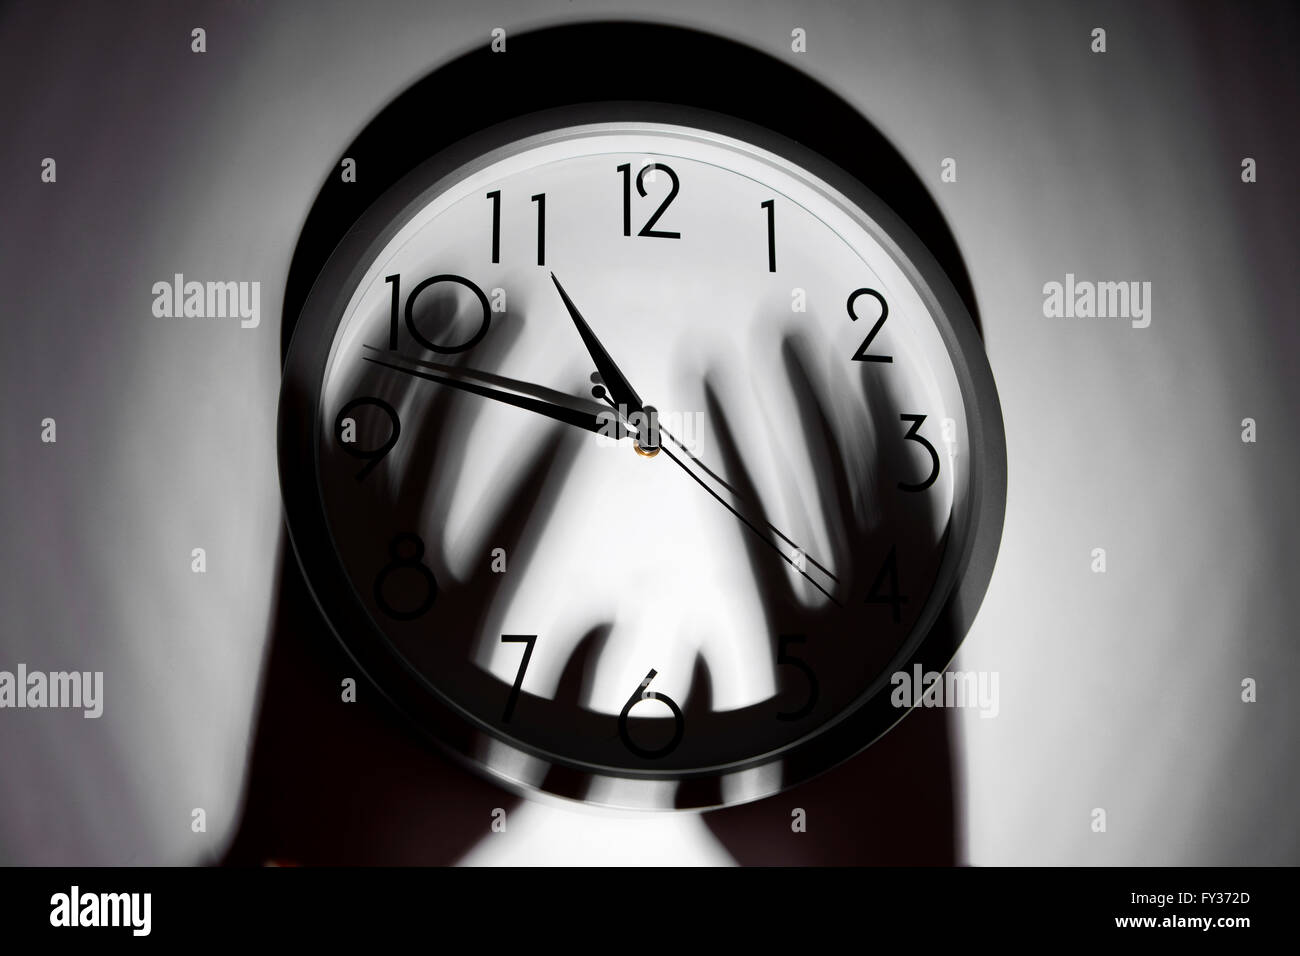 [PHO196] Time 002 - Stock Image